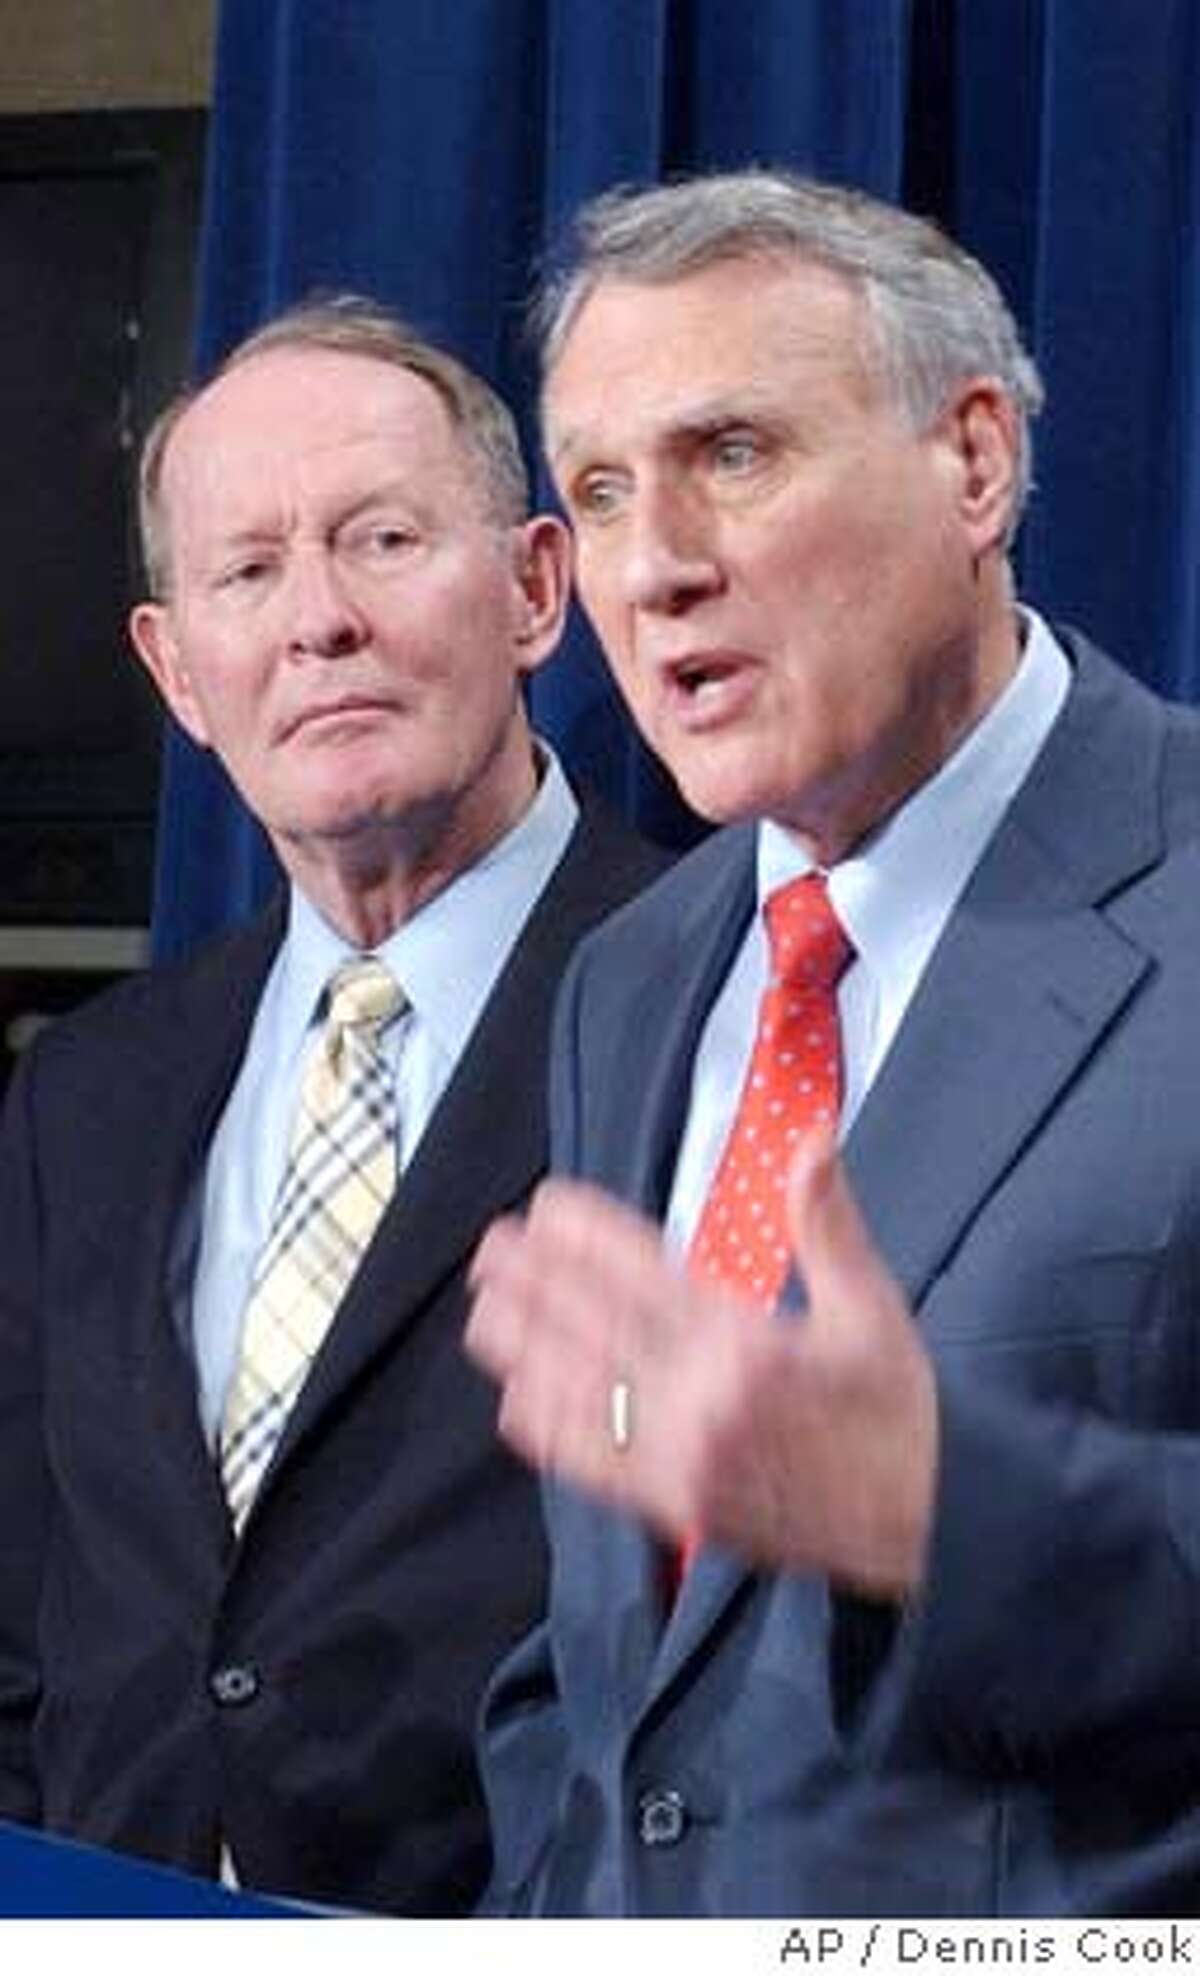 Sen. Jon Kyl, R-Ariz., talks to reporters in Washington Wednesday, Feb. 6, 2008, after after a cloture vote on an economic stimulus package failed to pass. Sen. Lamar Alexander, R-Tenn., is at left. (AP Photo/Dennis Cook)